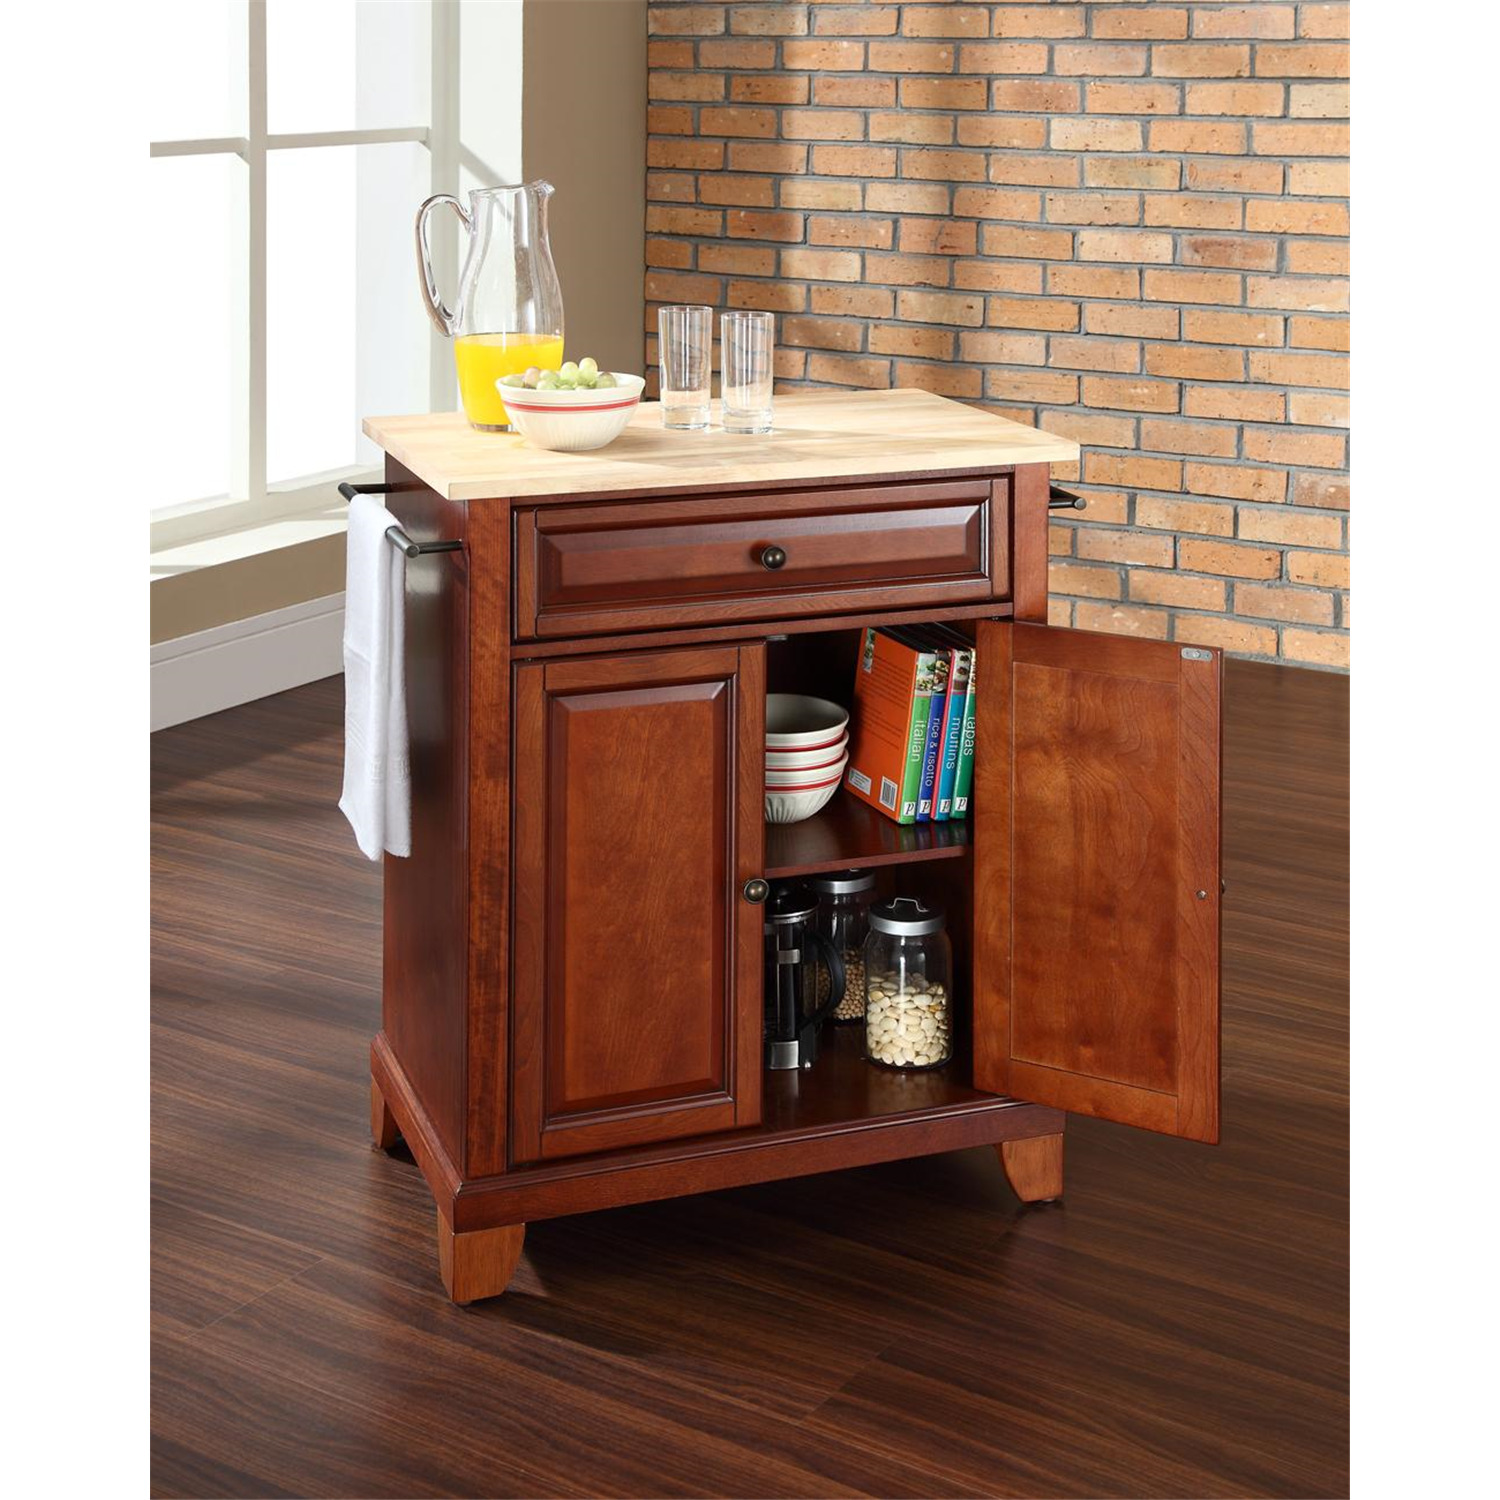 large portable kitchen island newport portable kitchen island from 265 00 to 340 00 20316